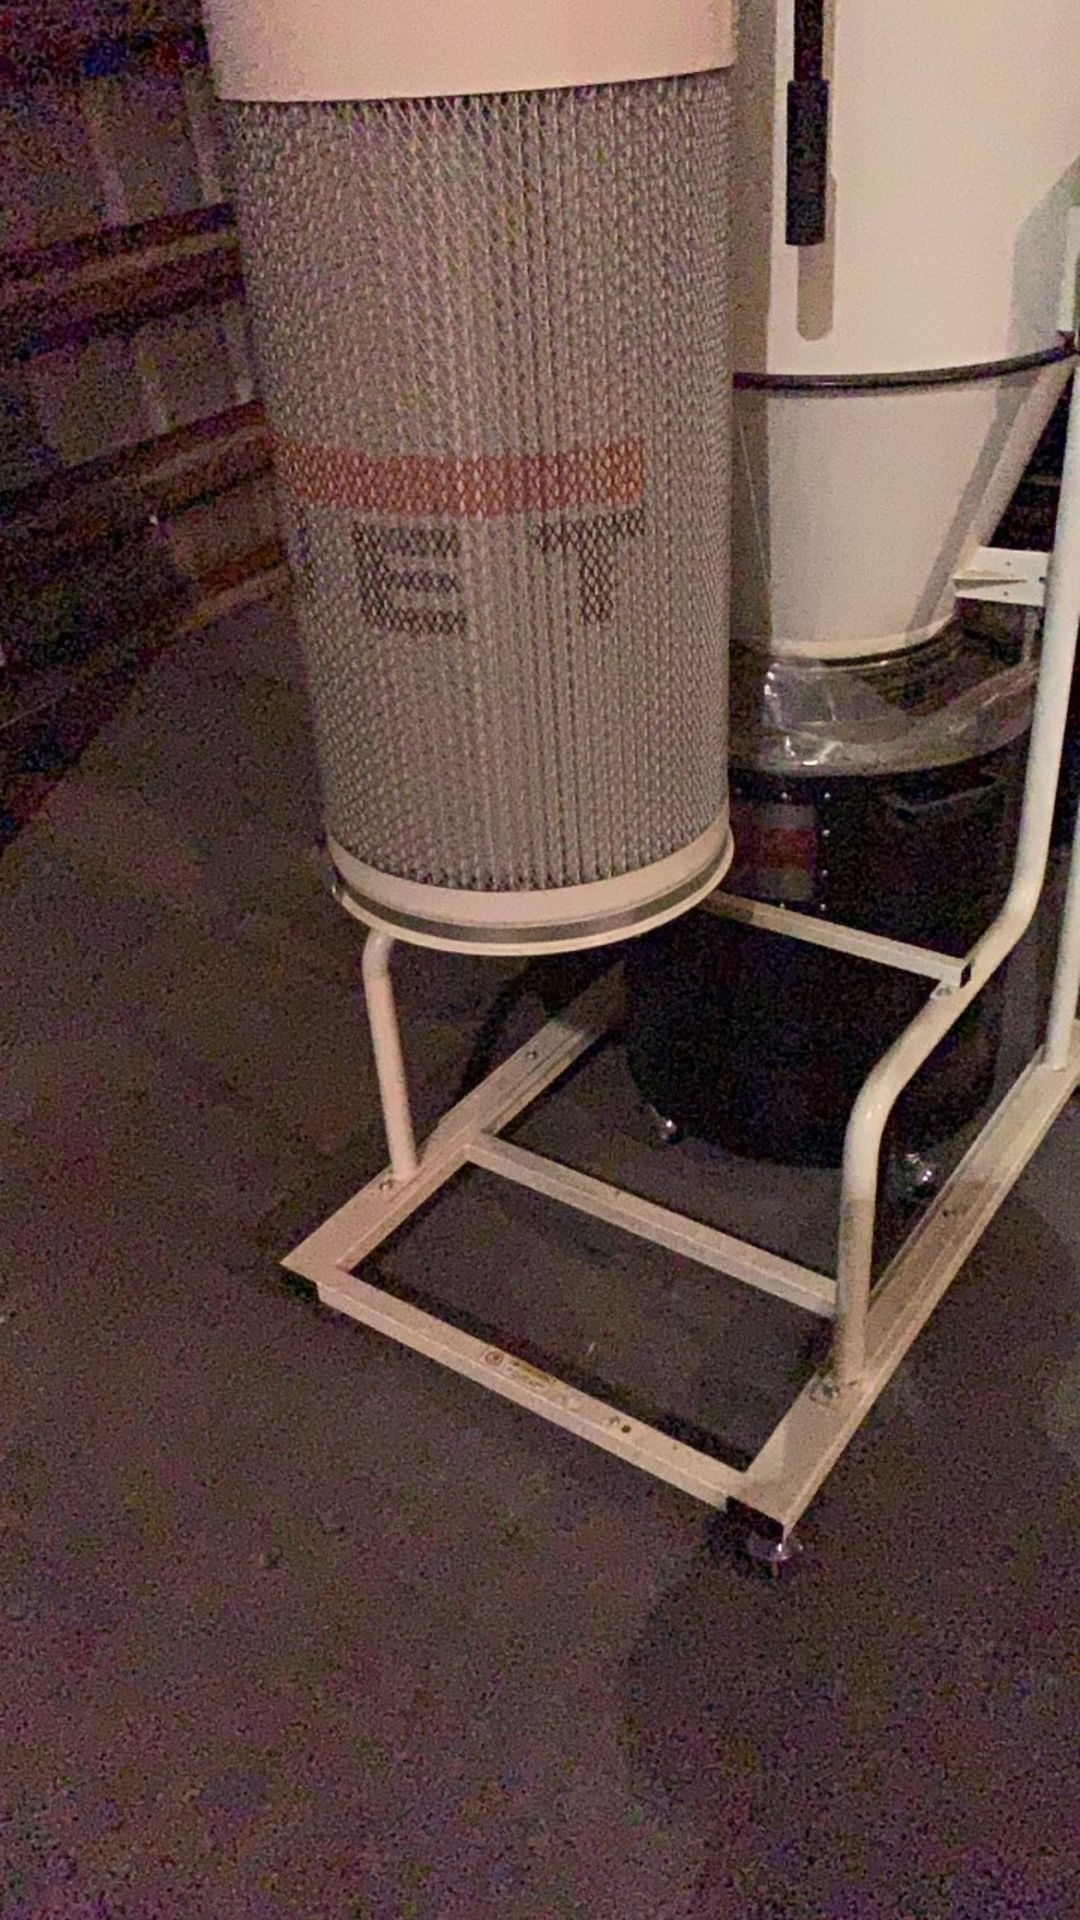 Used Granville Hemp Flower Extractor Includes: Hemp Flower Extractor w/ Vacuum & Conveying System - Image 11 of 17